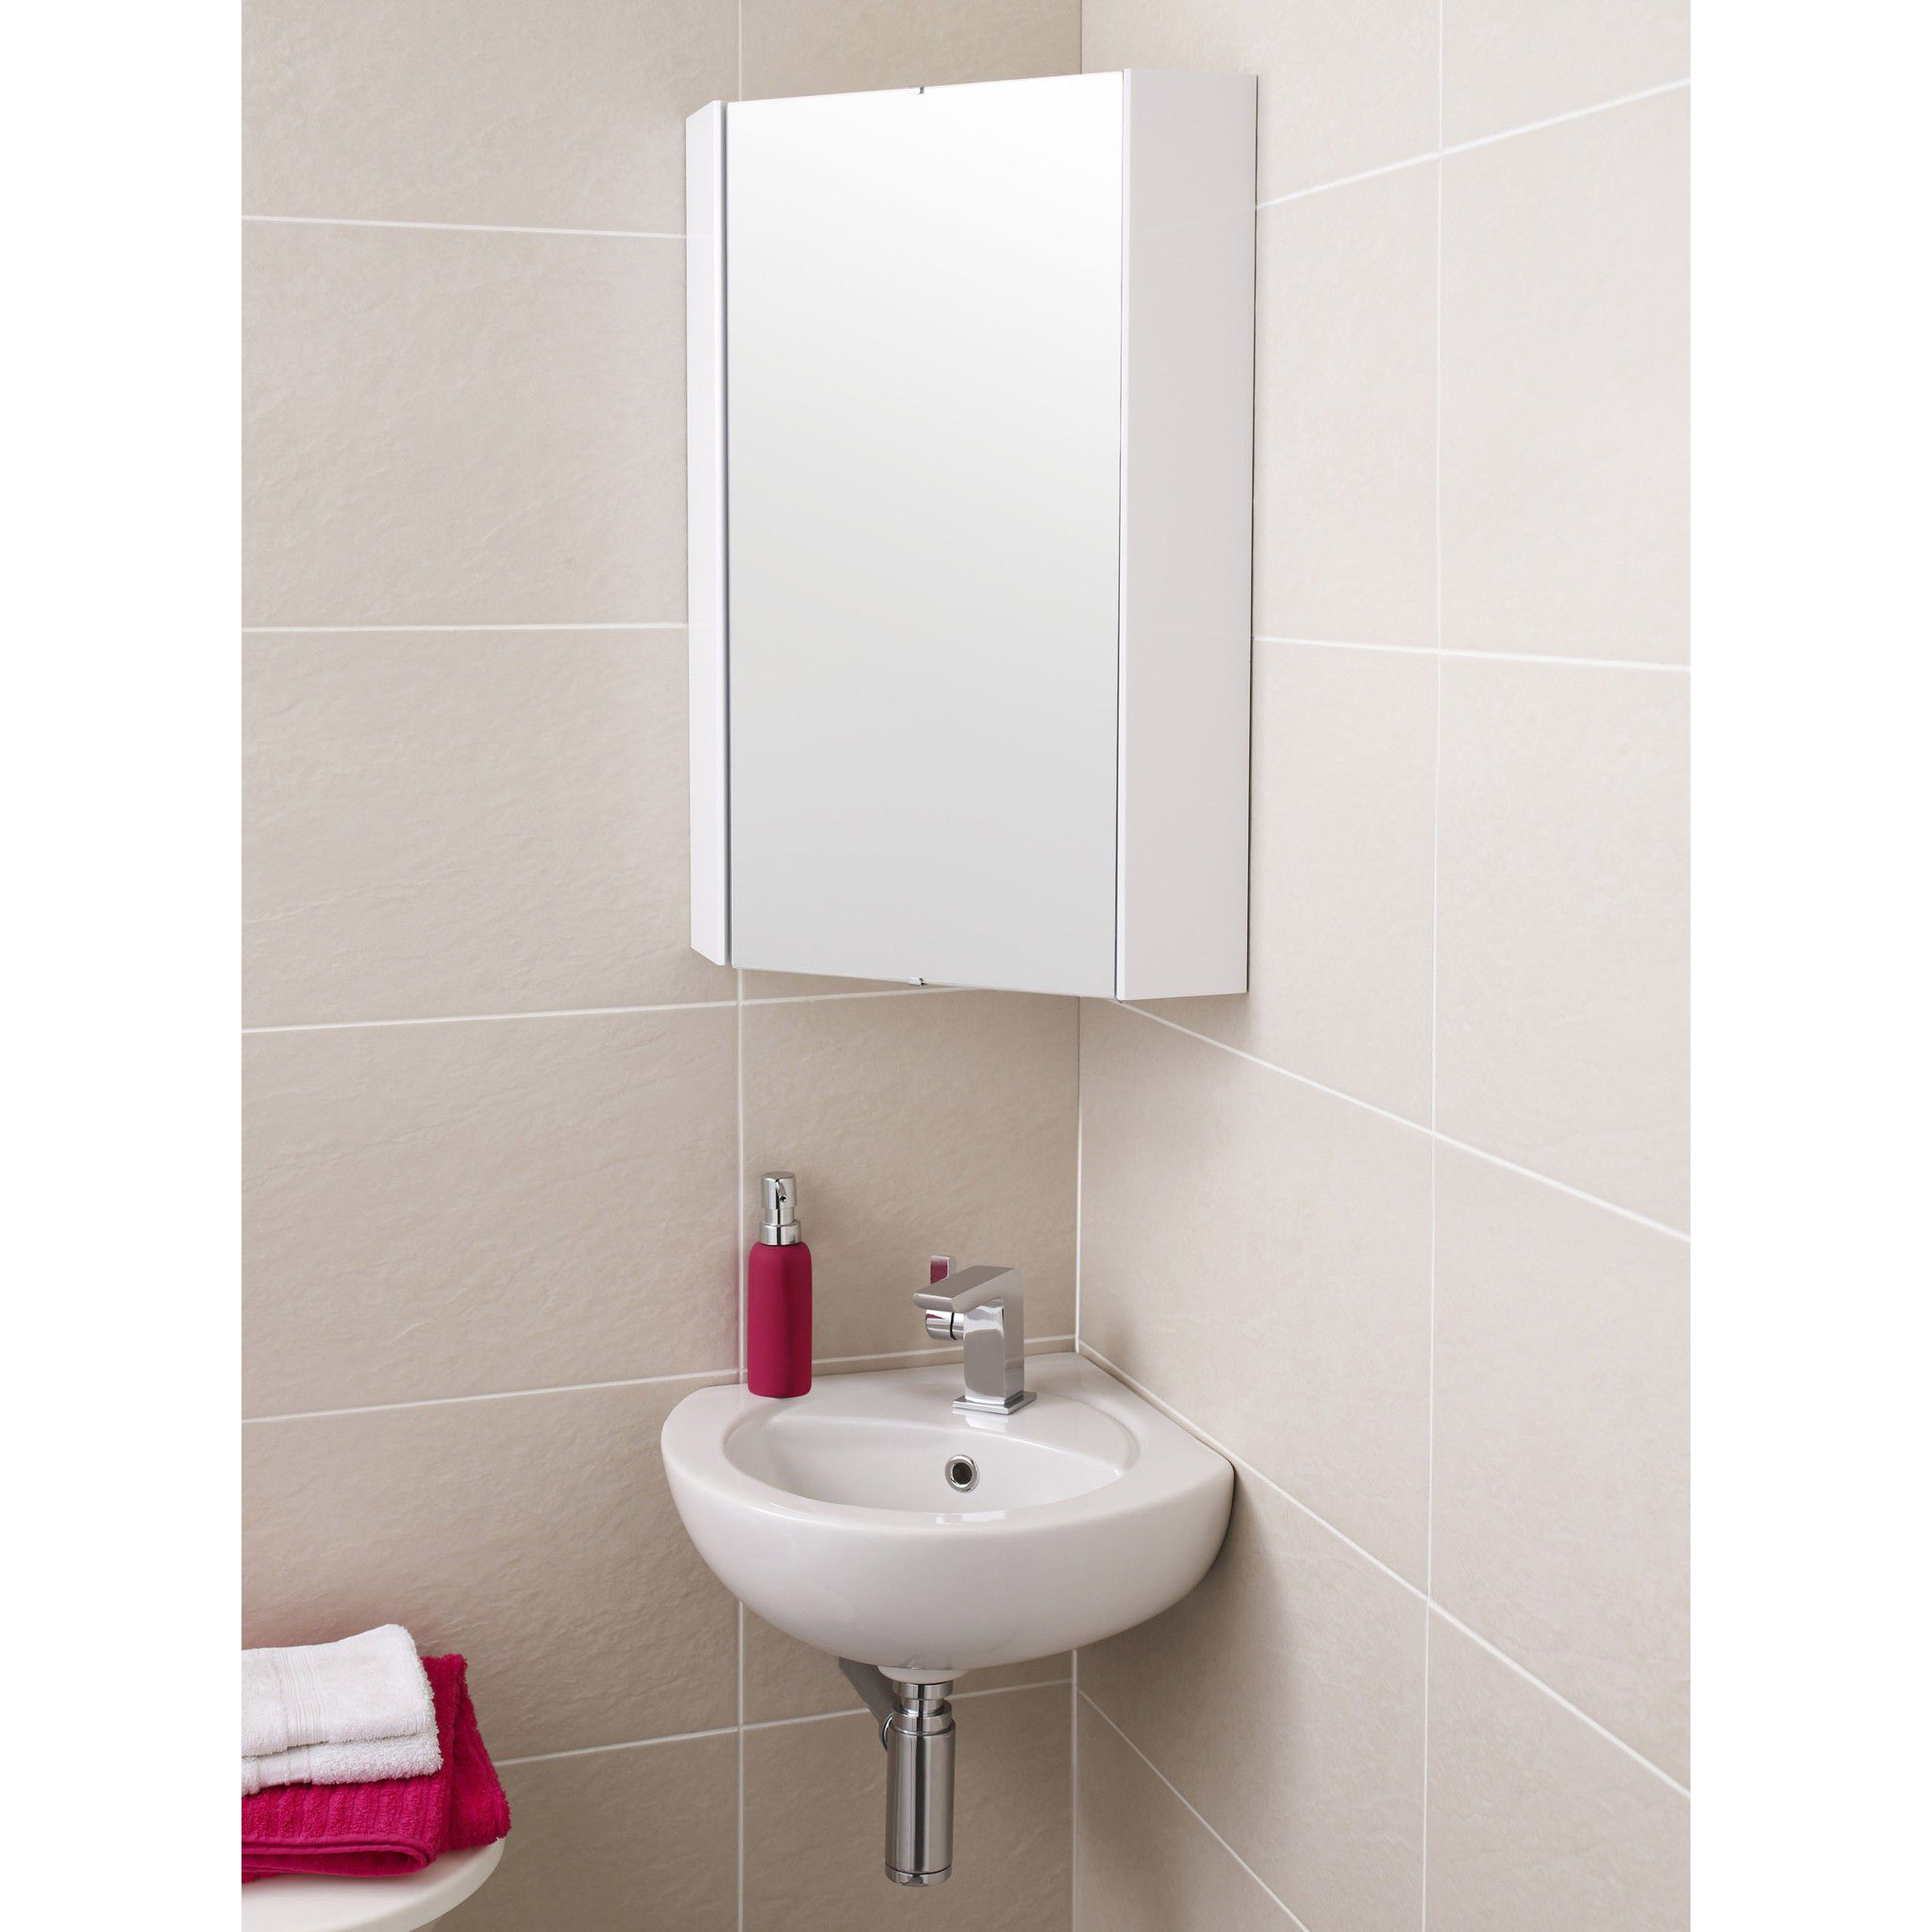 Bathroom Mirror Door mirrored bathroom cabinet without lights pedestal sink towel hager